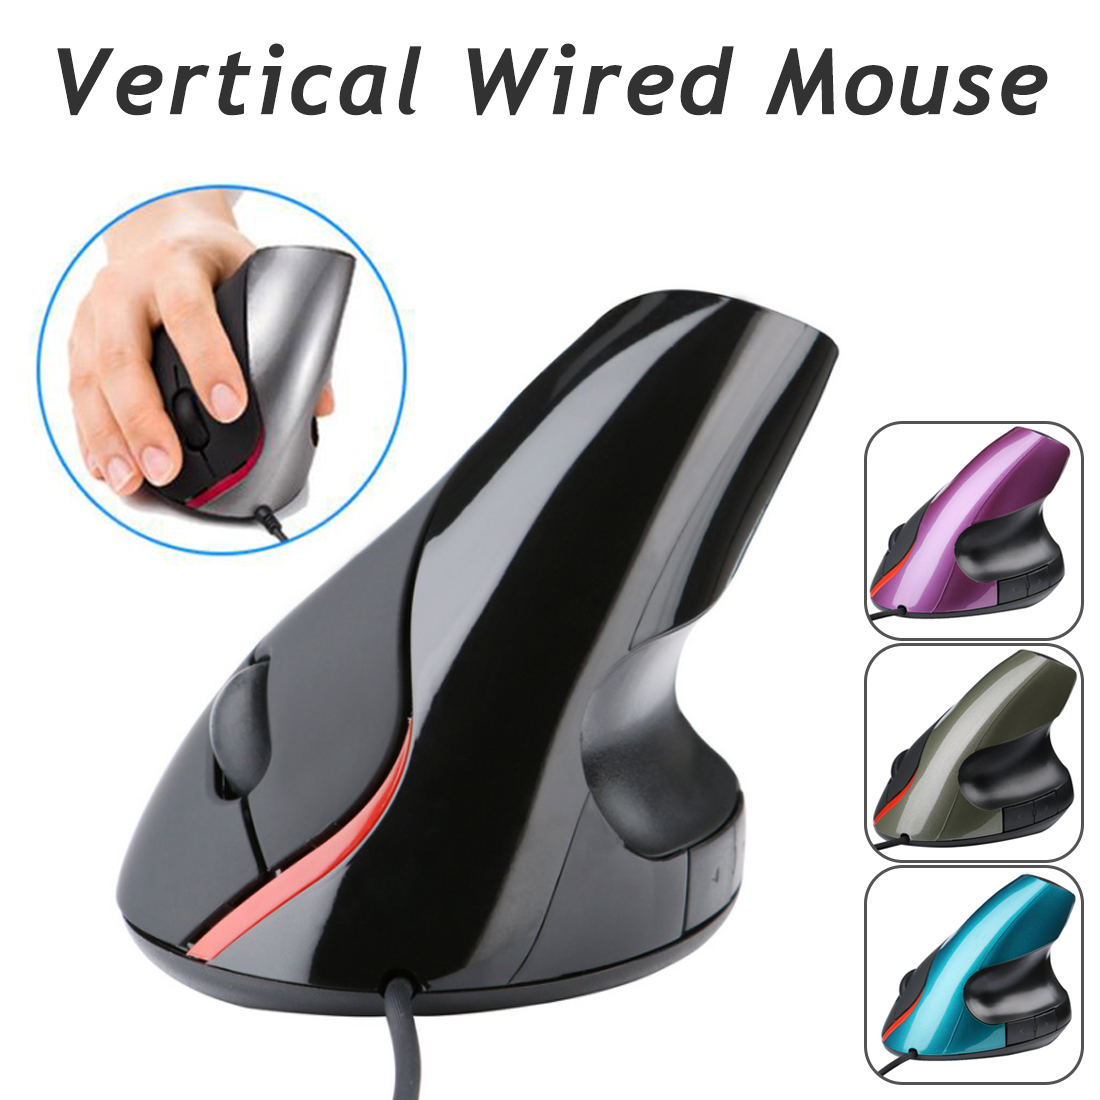 Etmakit New Ergonomic Design USB Vertical Optical Mouse Wrist Healing For Computer PC Laptop Desktop Prevention Mouse